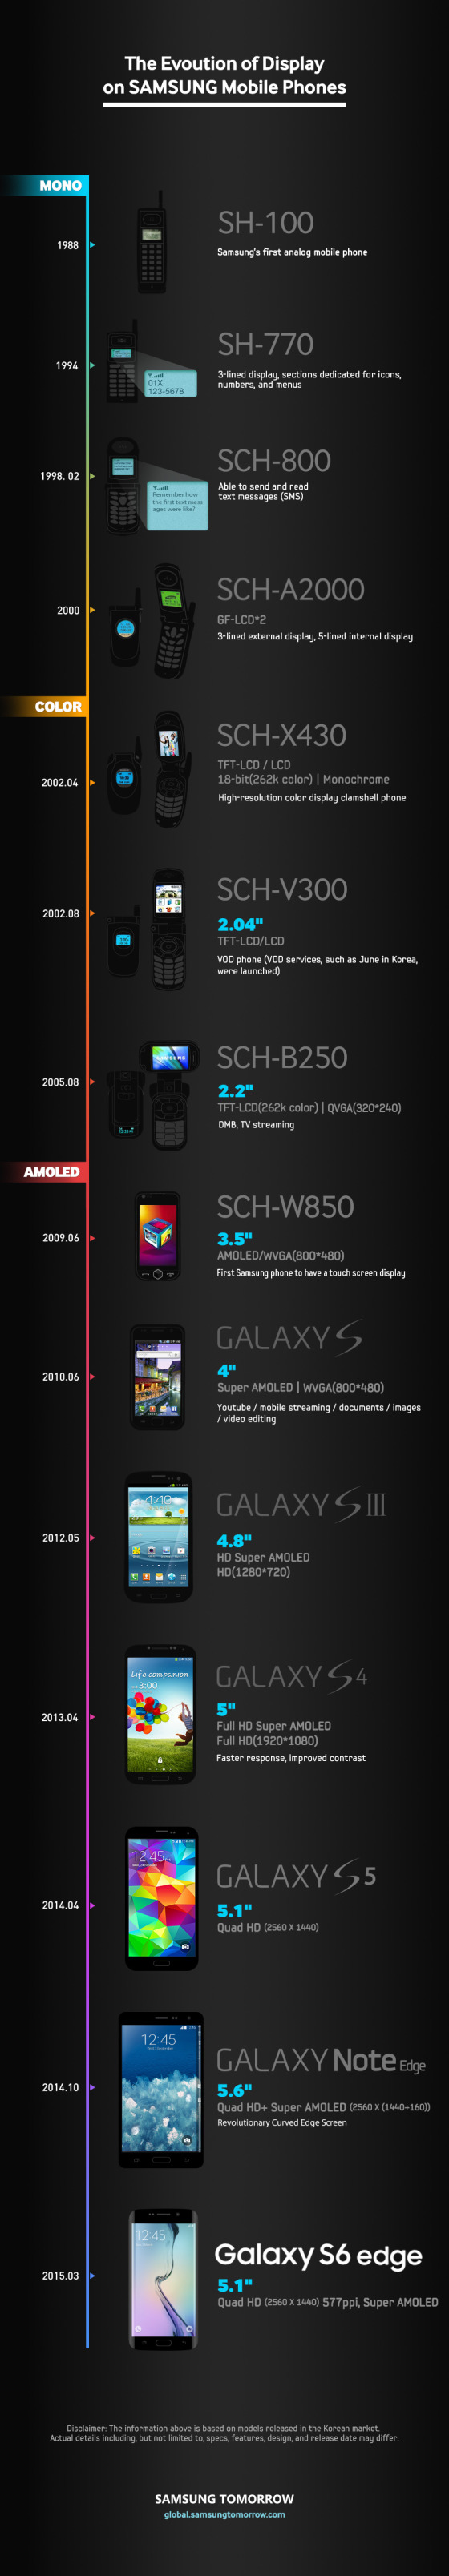 samsung-display-infographic-560x3215